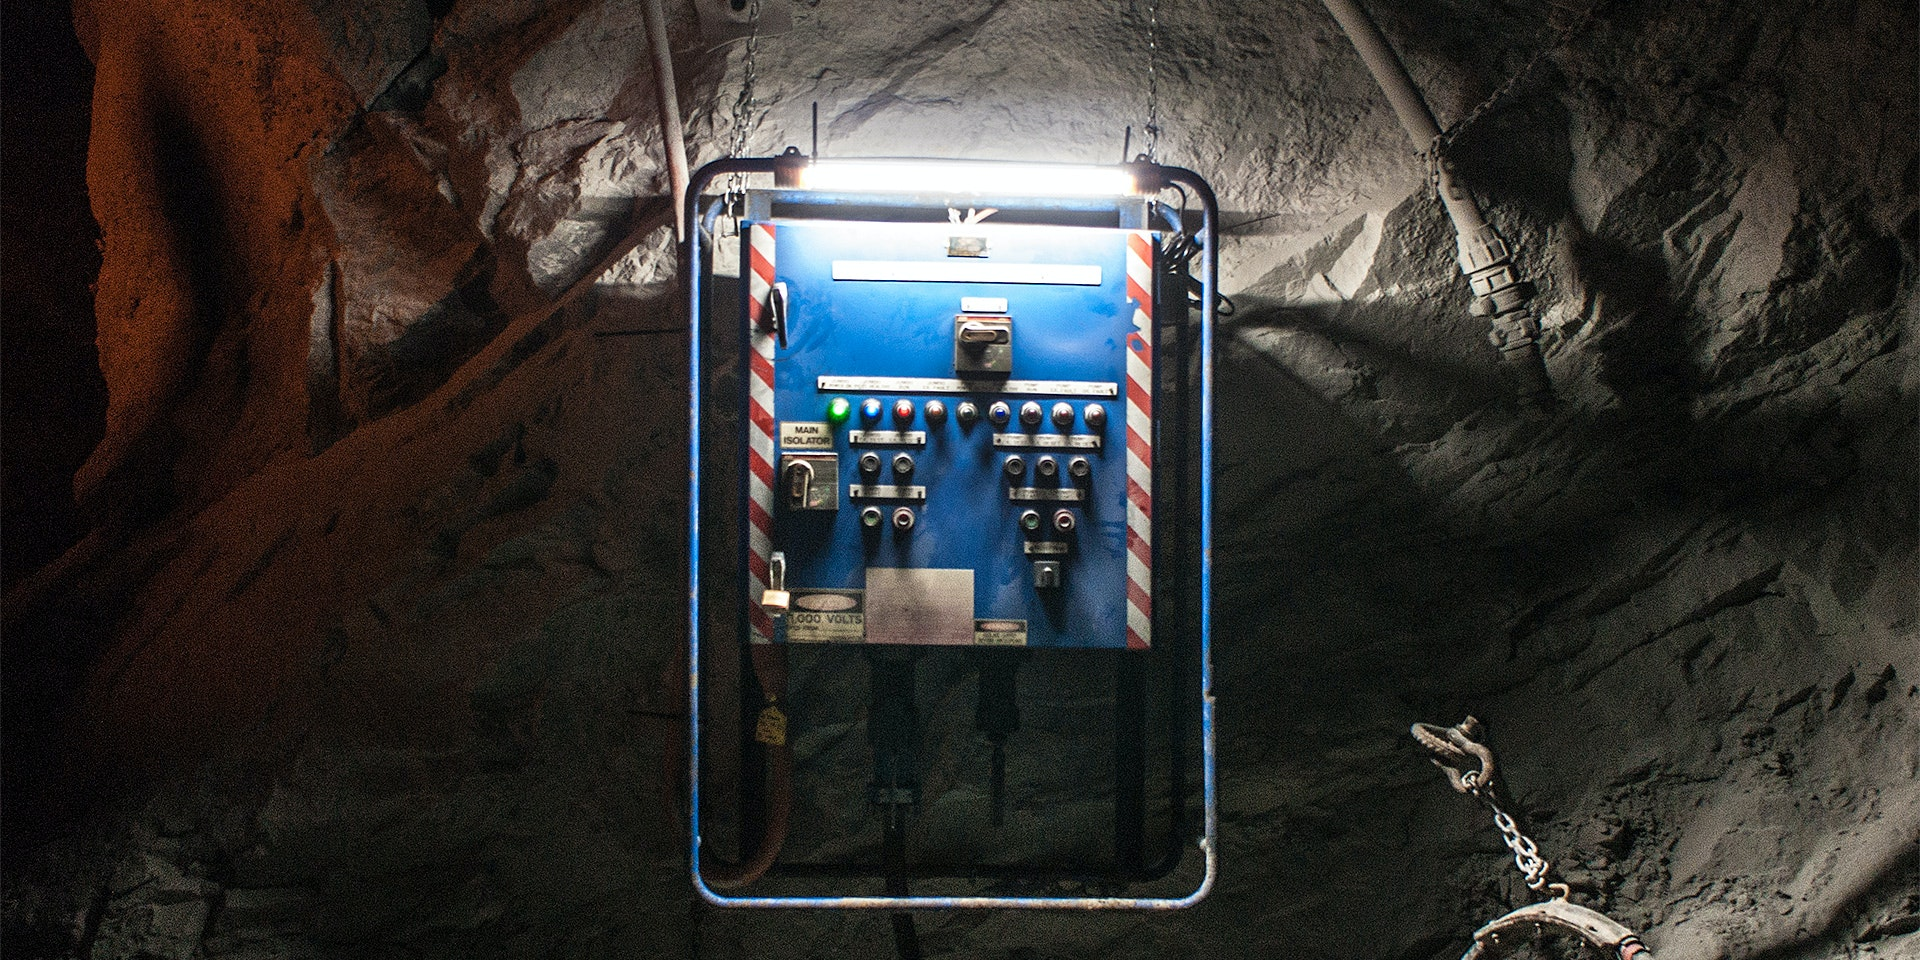 AC2 Mining Lead Light in application, installed in an underground mine over a switch board